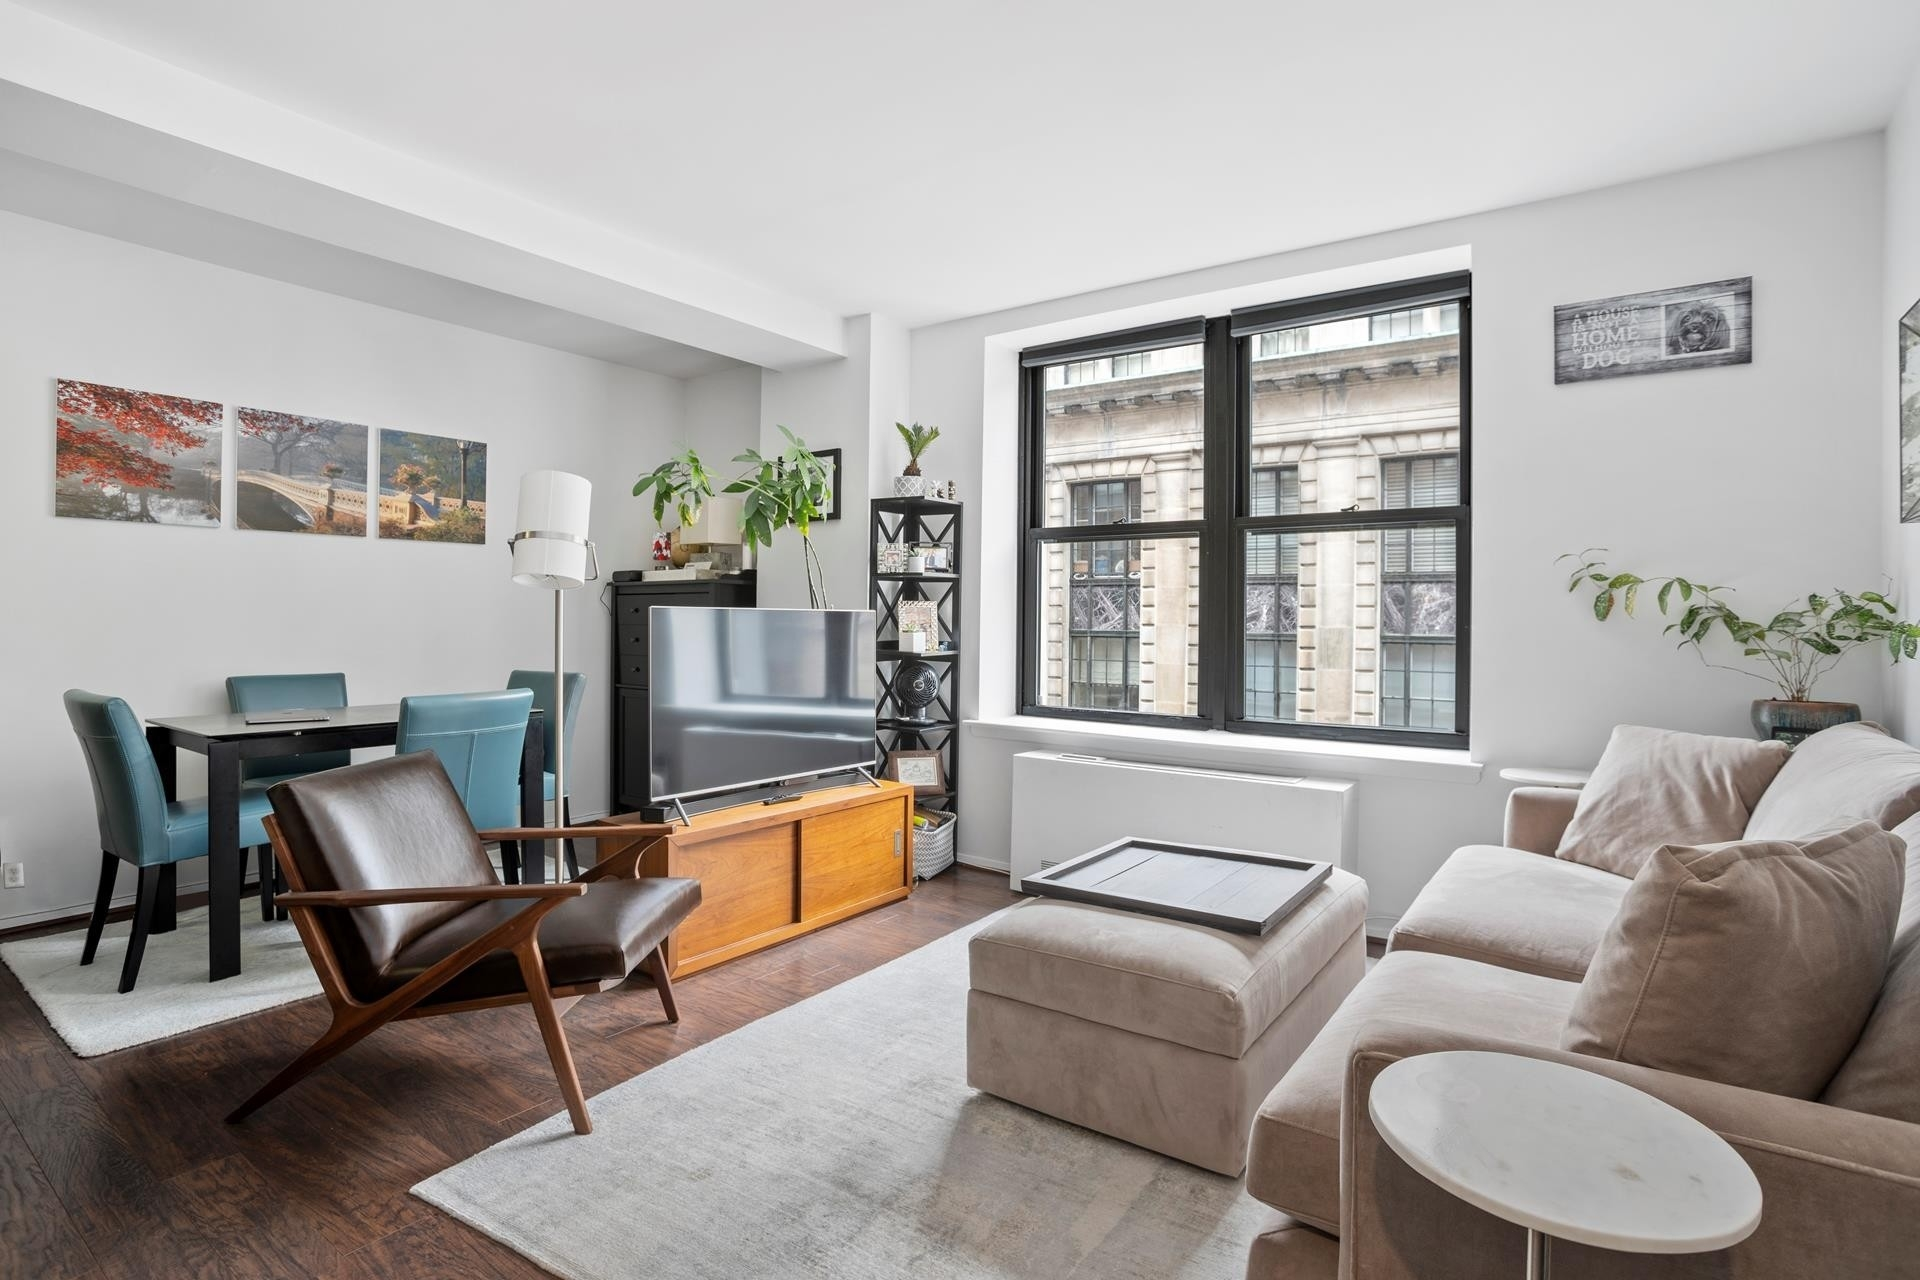 Condominium at The Fitzgerald, 201 West 74th St, 9G New York